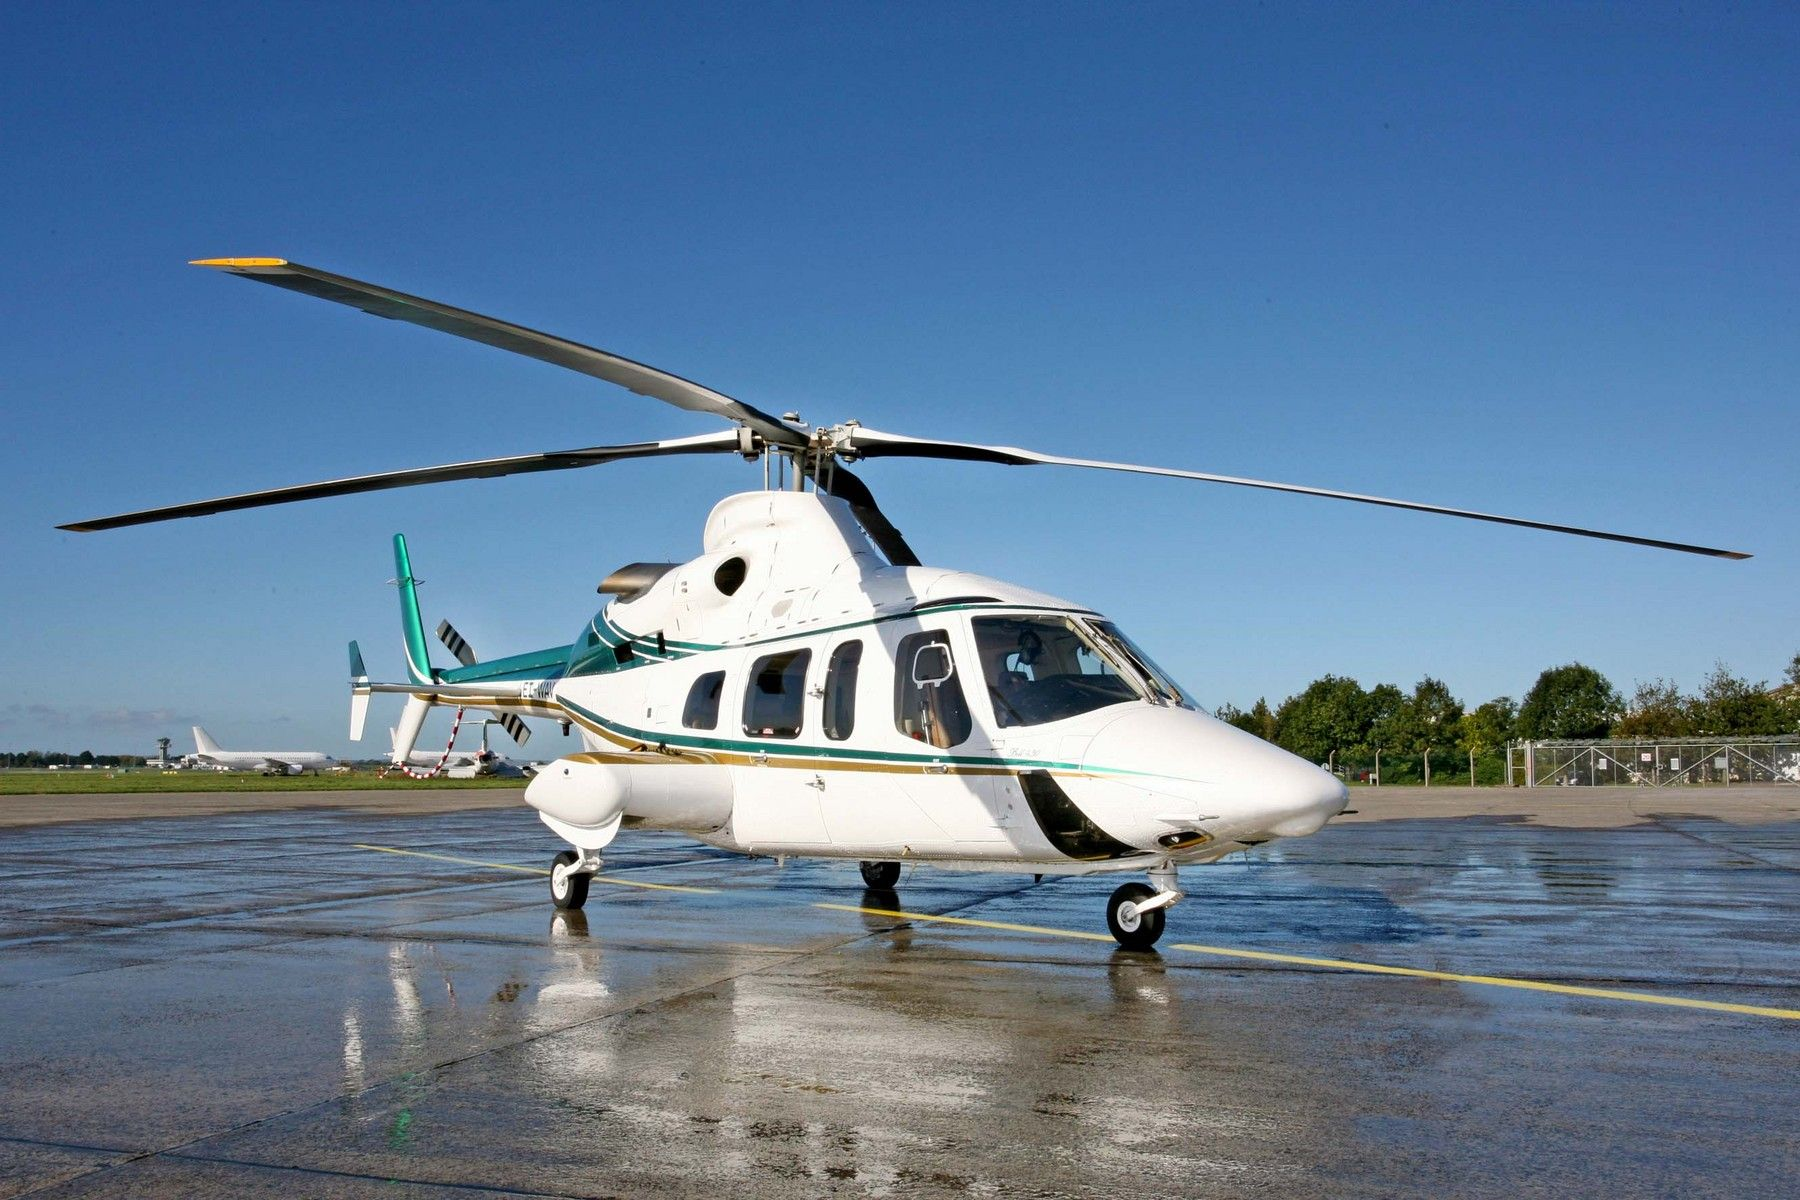 1997 Bell 430 - Dual Pilot IFR Certified, VIP 6 PAX Configuration (Provisions for 2 Additional Seats), Auxiliary Fuel Tank, Environmental Control System =>